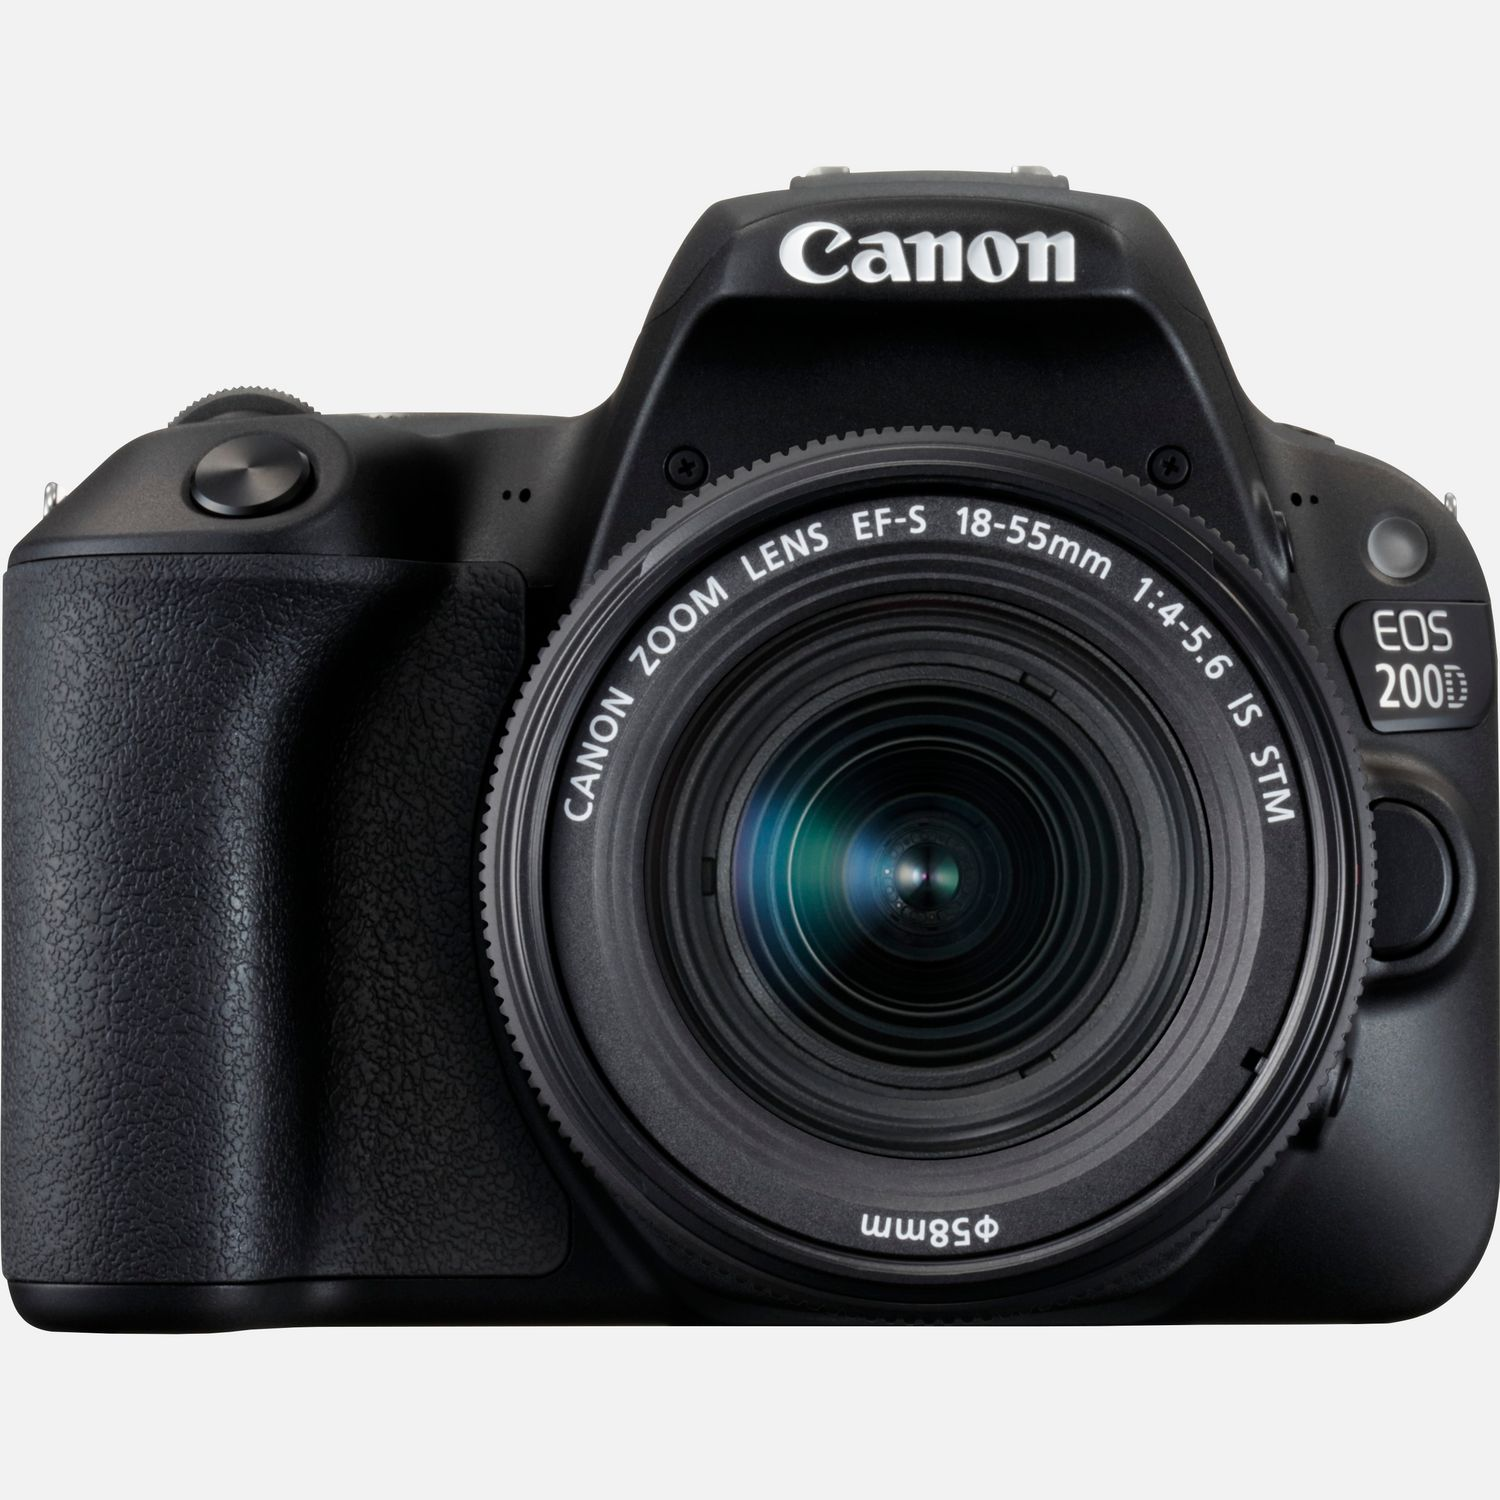 Image of Canon EOS 200D Black and EF-S 18-55mm f/4-5.6 IS STM Black